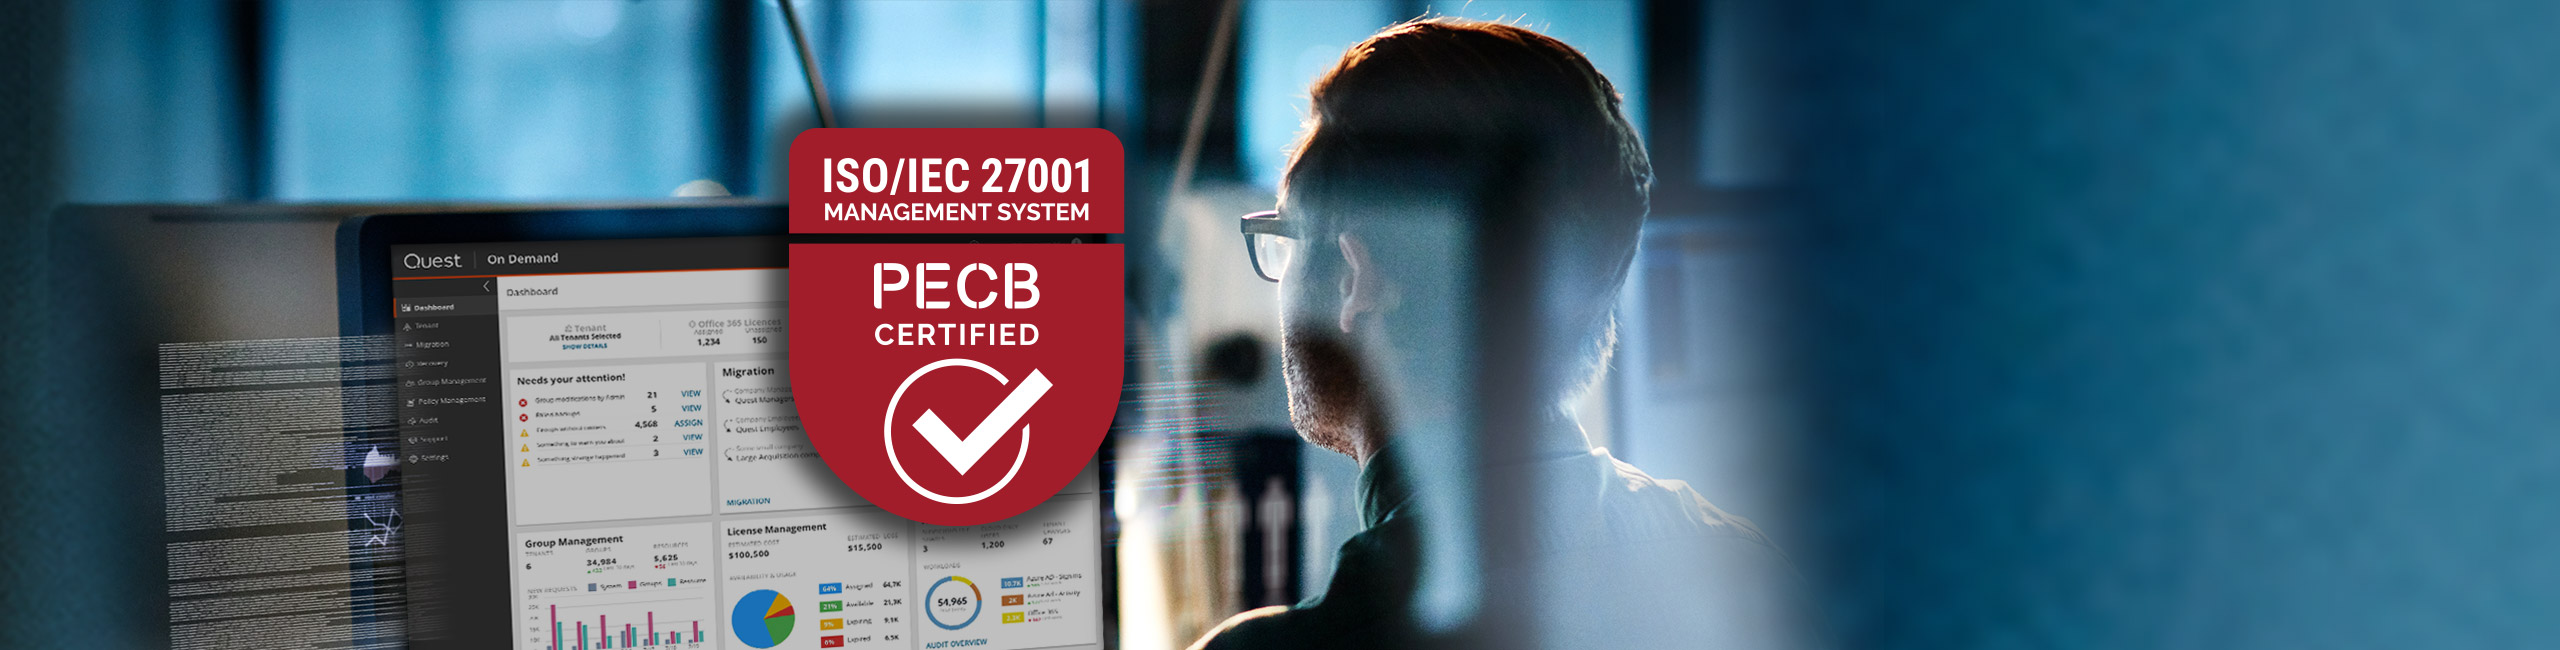 Quest On Demand ISO Certification